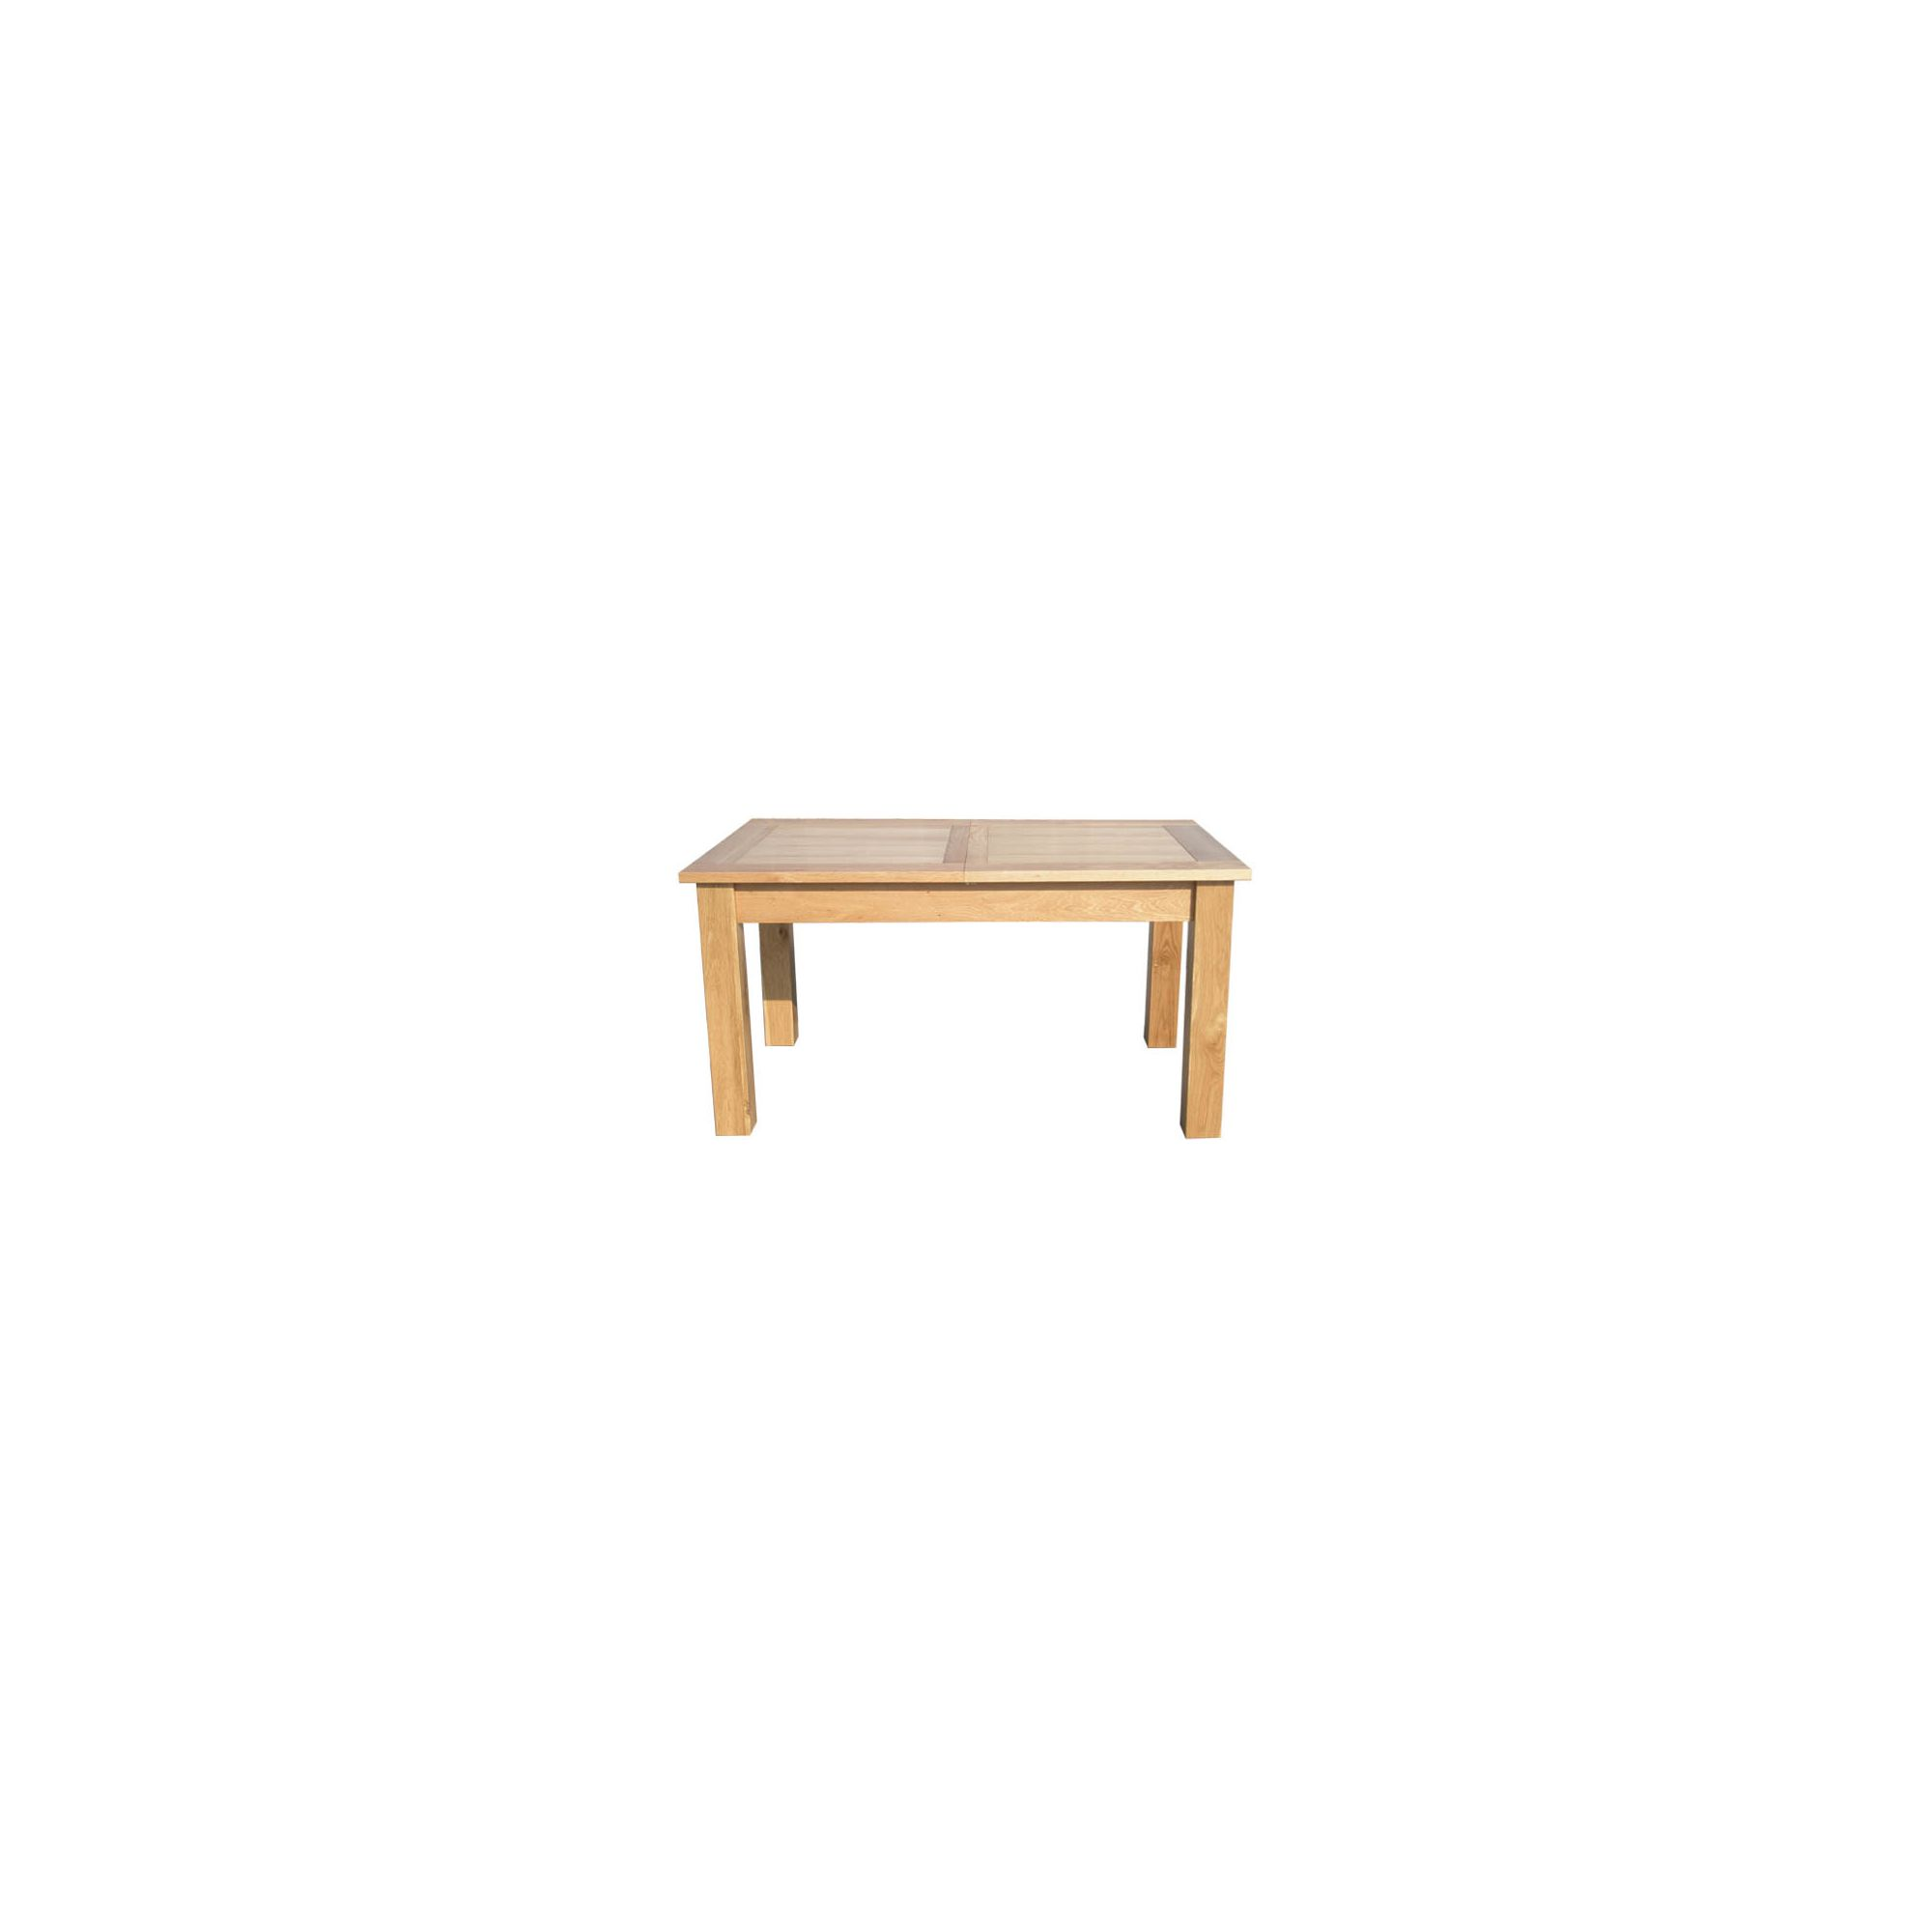 Home Zone Furniture Lincoln Solid Oak Extendable Dining Table - 150-200cm